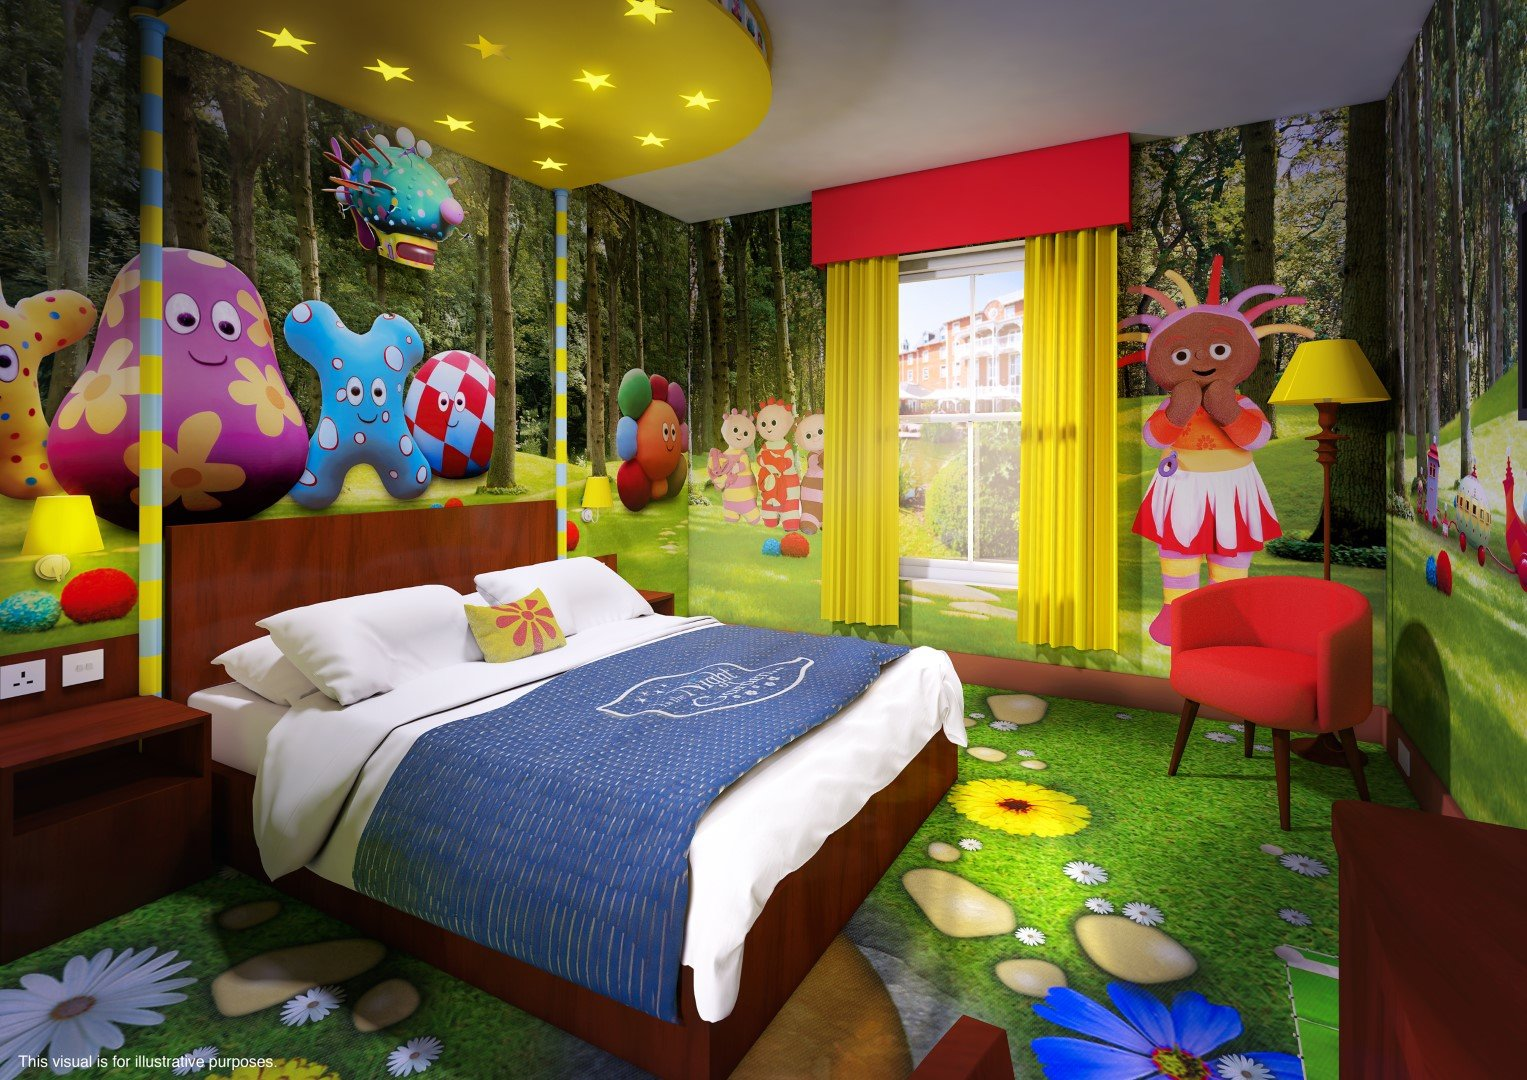 Surprising Alton Towers Cbeebies Land Hotel Themed Bedrooms Unveiled With Goodlooking Inside The In The Night Garden Room At The Cbeebies Land Hotel With Beauteous Pity Me Garden Centre Also Water Fountain For Garden In Addition Wards Bridge Gardens And Garden Edinburgh As Well As Fairchild Tropical Botanic Garden Additionally Garden Crafts From Kiphakescom With   Beauteous Alton Towers Cbeebies Land Hotel Themed Bedrooms Unveiled With Surprising Garden Edinburgh As Well As Fairchild Tropical Botanic Garden Additionally Garden Crafts And Goodlooking Inside The In The Night Garden Room At The Cbeebies Land Hotel Via Kiphakescom